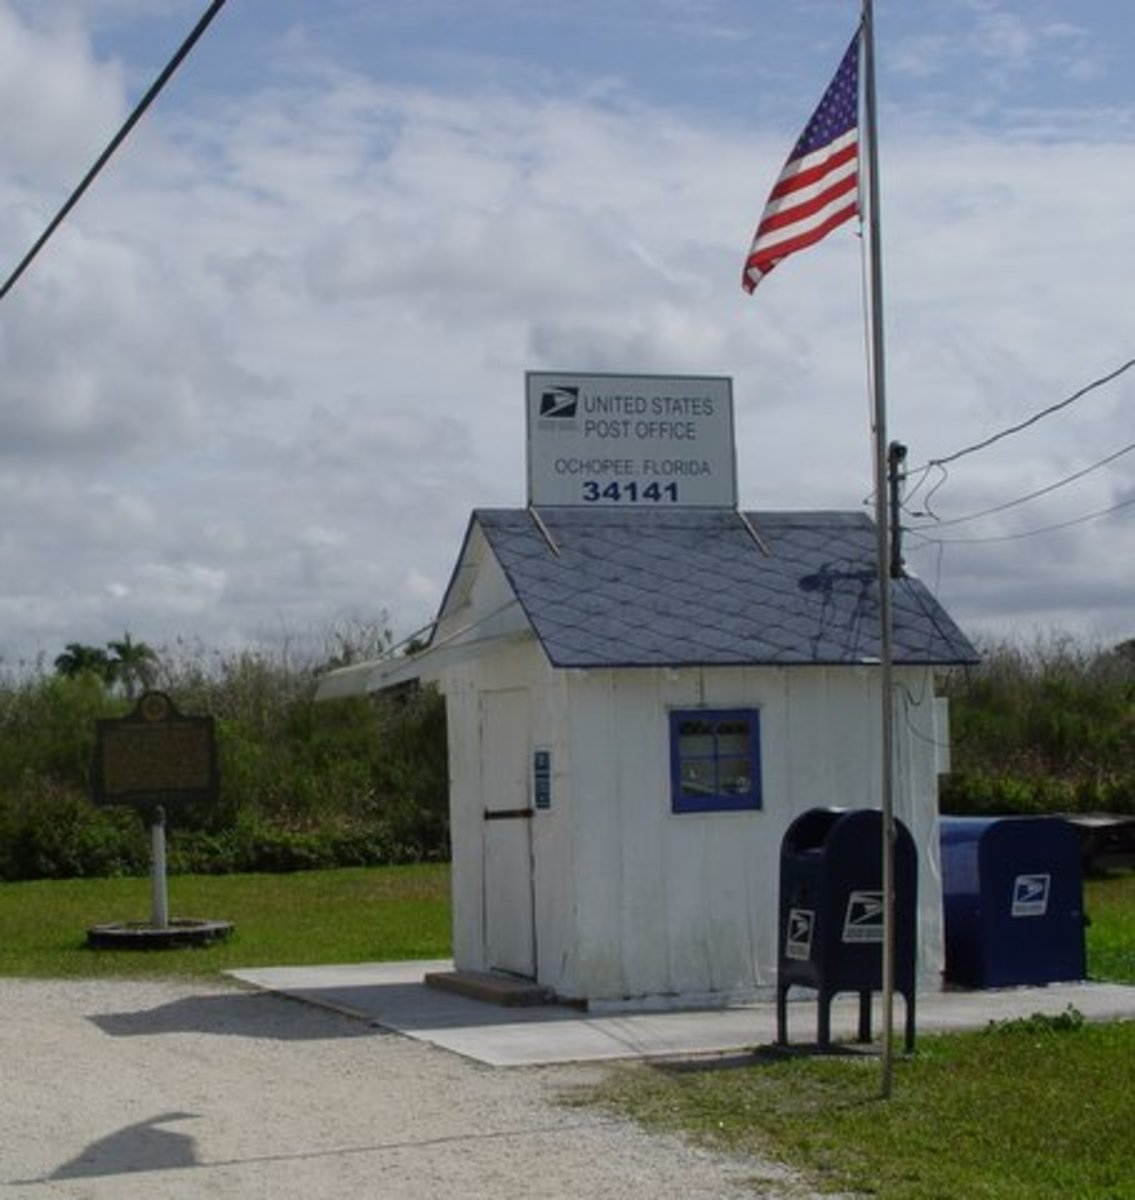 The Ochopee Post Office is the smallest post office in the USA.  The one time storage facility for irrigation pipes was made into a post office in 1953.  The post office is fully functional and owned by the Wooten family.